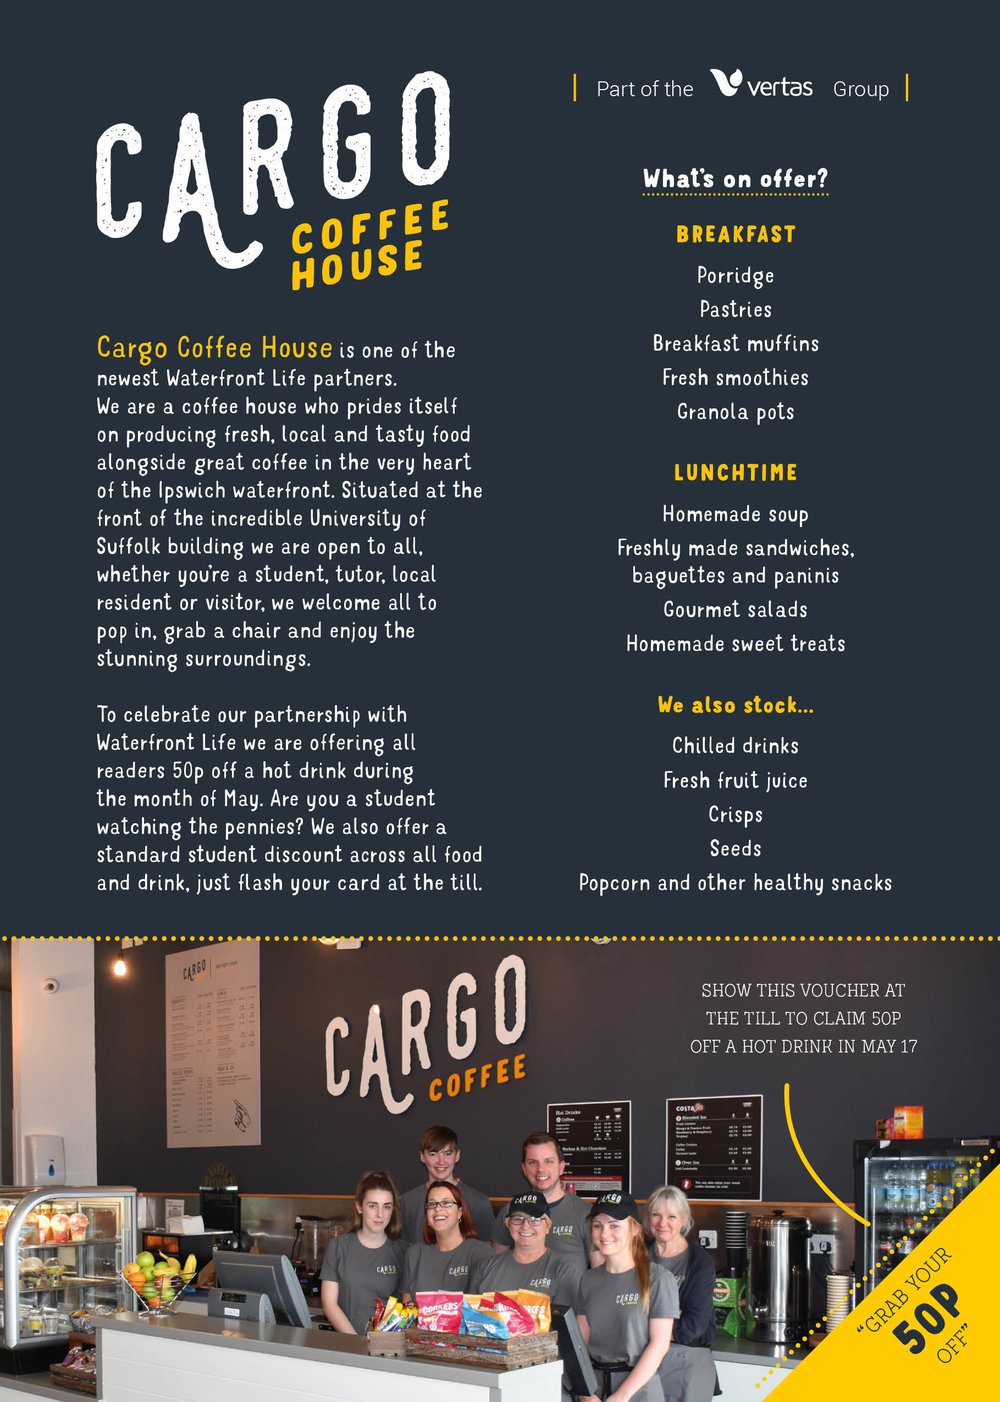 cargo coffee, university of suffolk, ipswich, waterfront, cafe